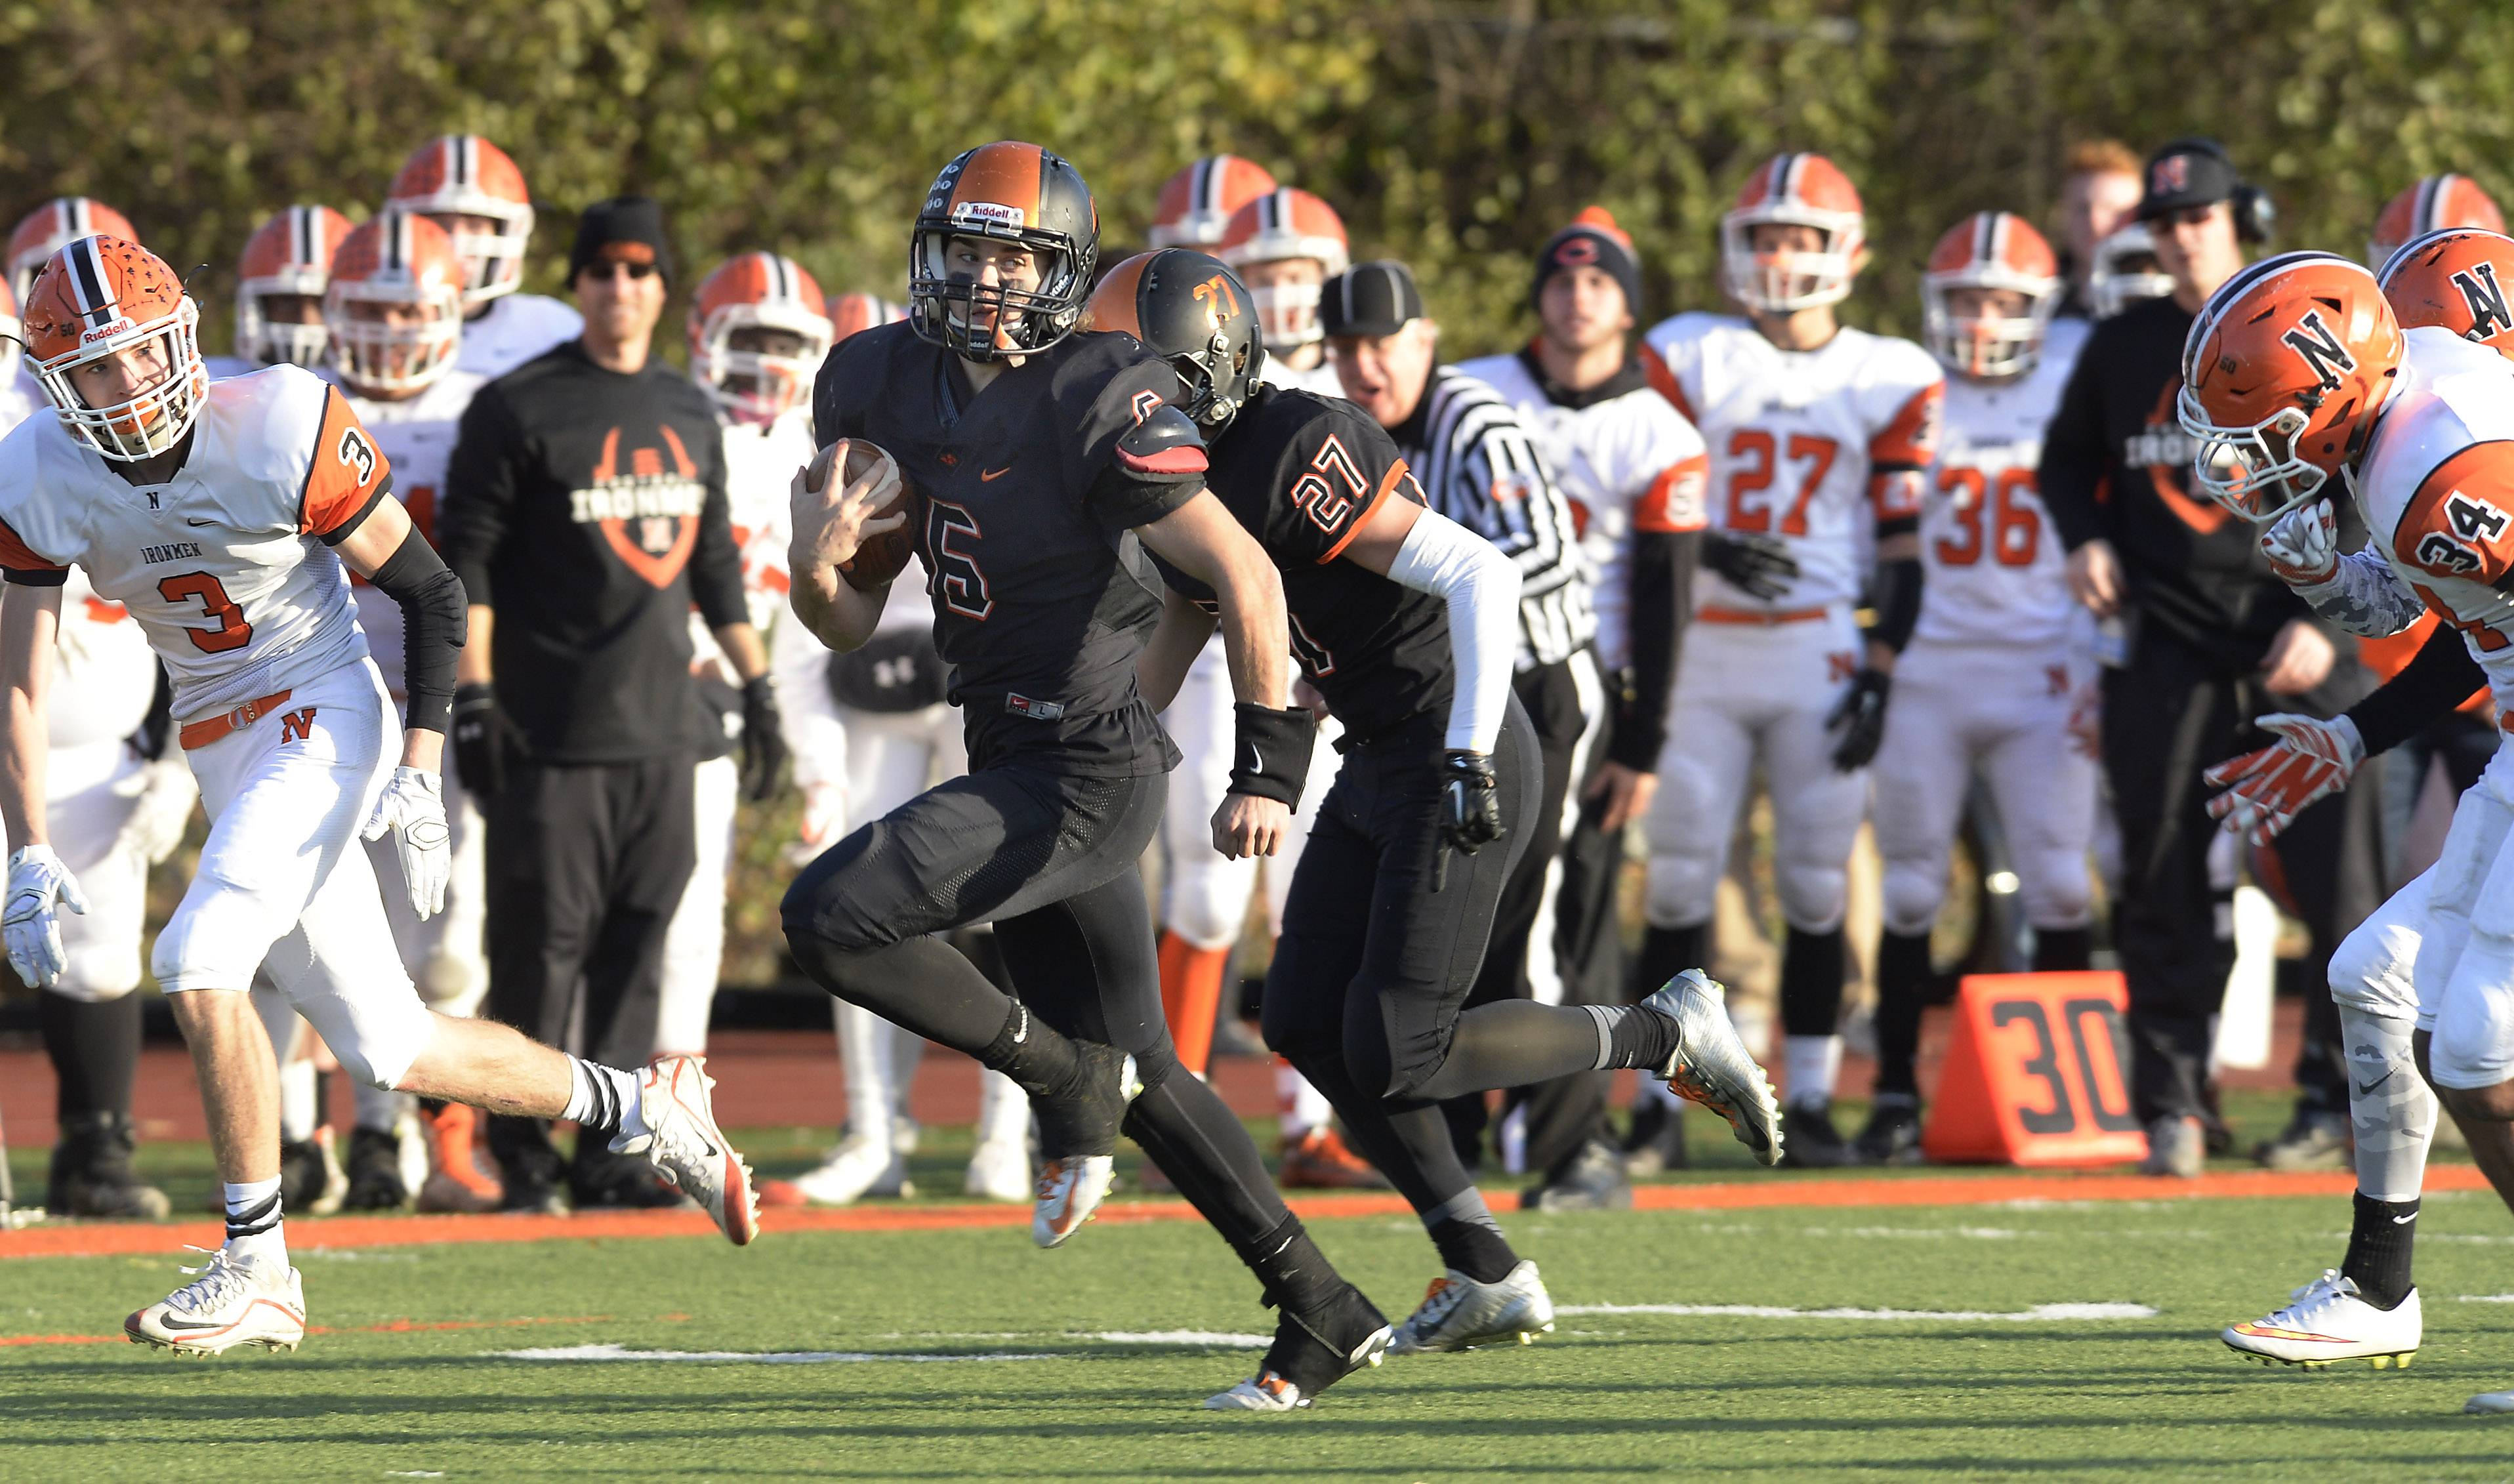 Libertyville quarterback Riley Lees sails into the end zone for a fourth-quarter touchdown in the Class 7A state quarterfinal game against Normal Community last week. The Wildcats travel to Bradley-Bourbonnais Saturday for the semifinals.